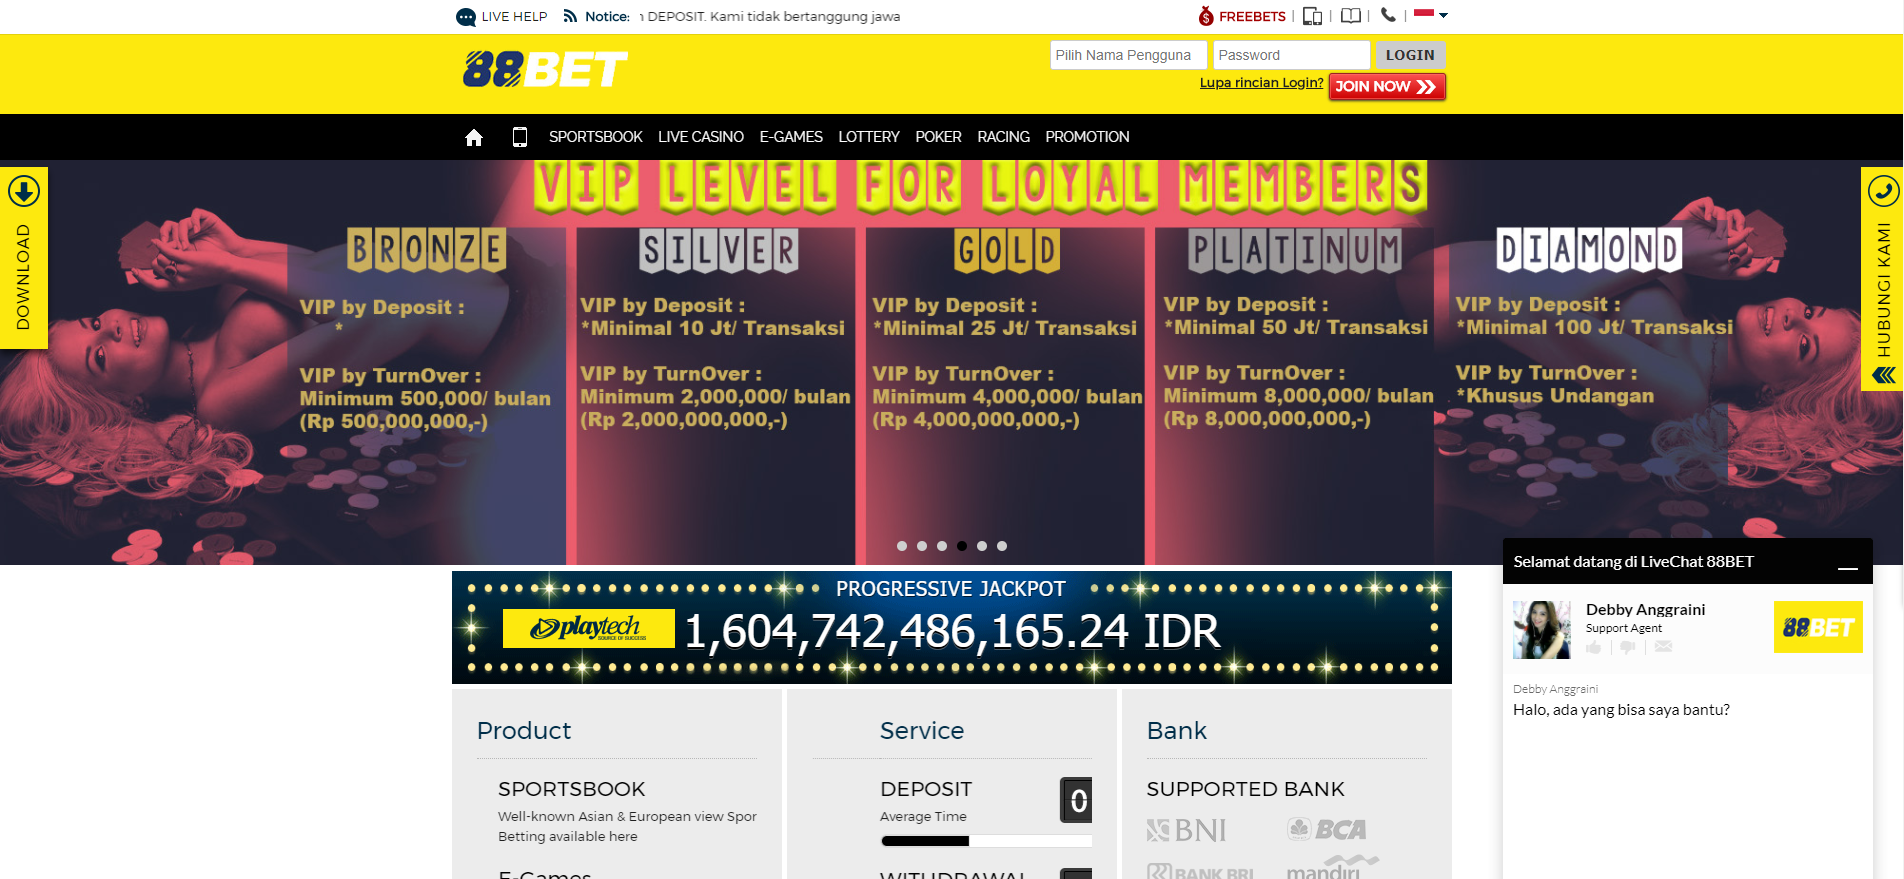 88betz Online Casino: A Quick Review